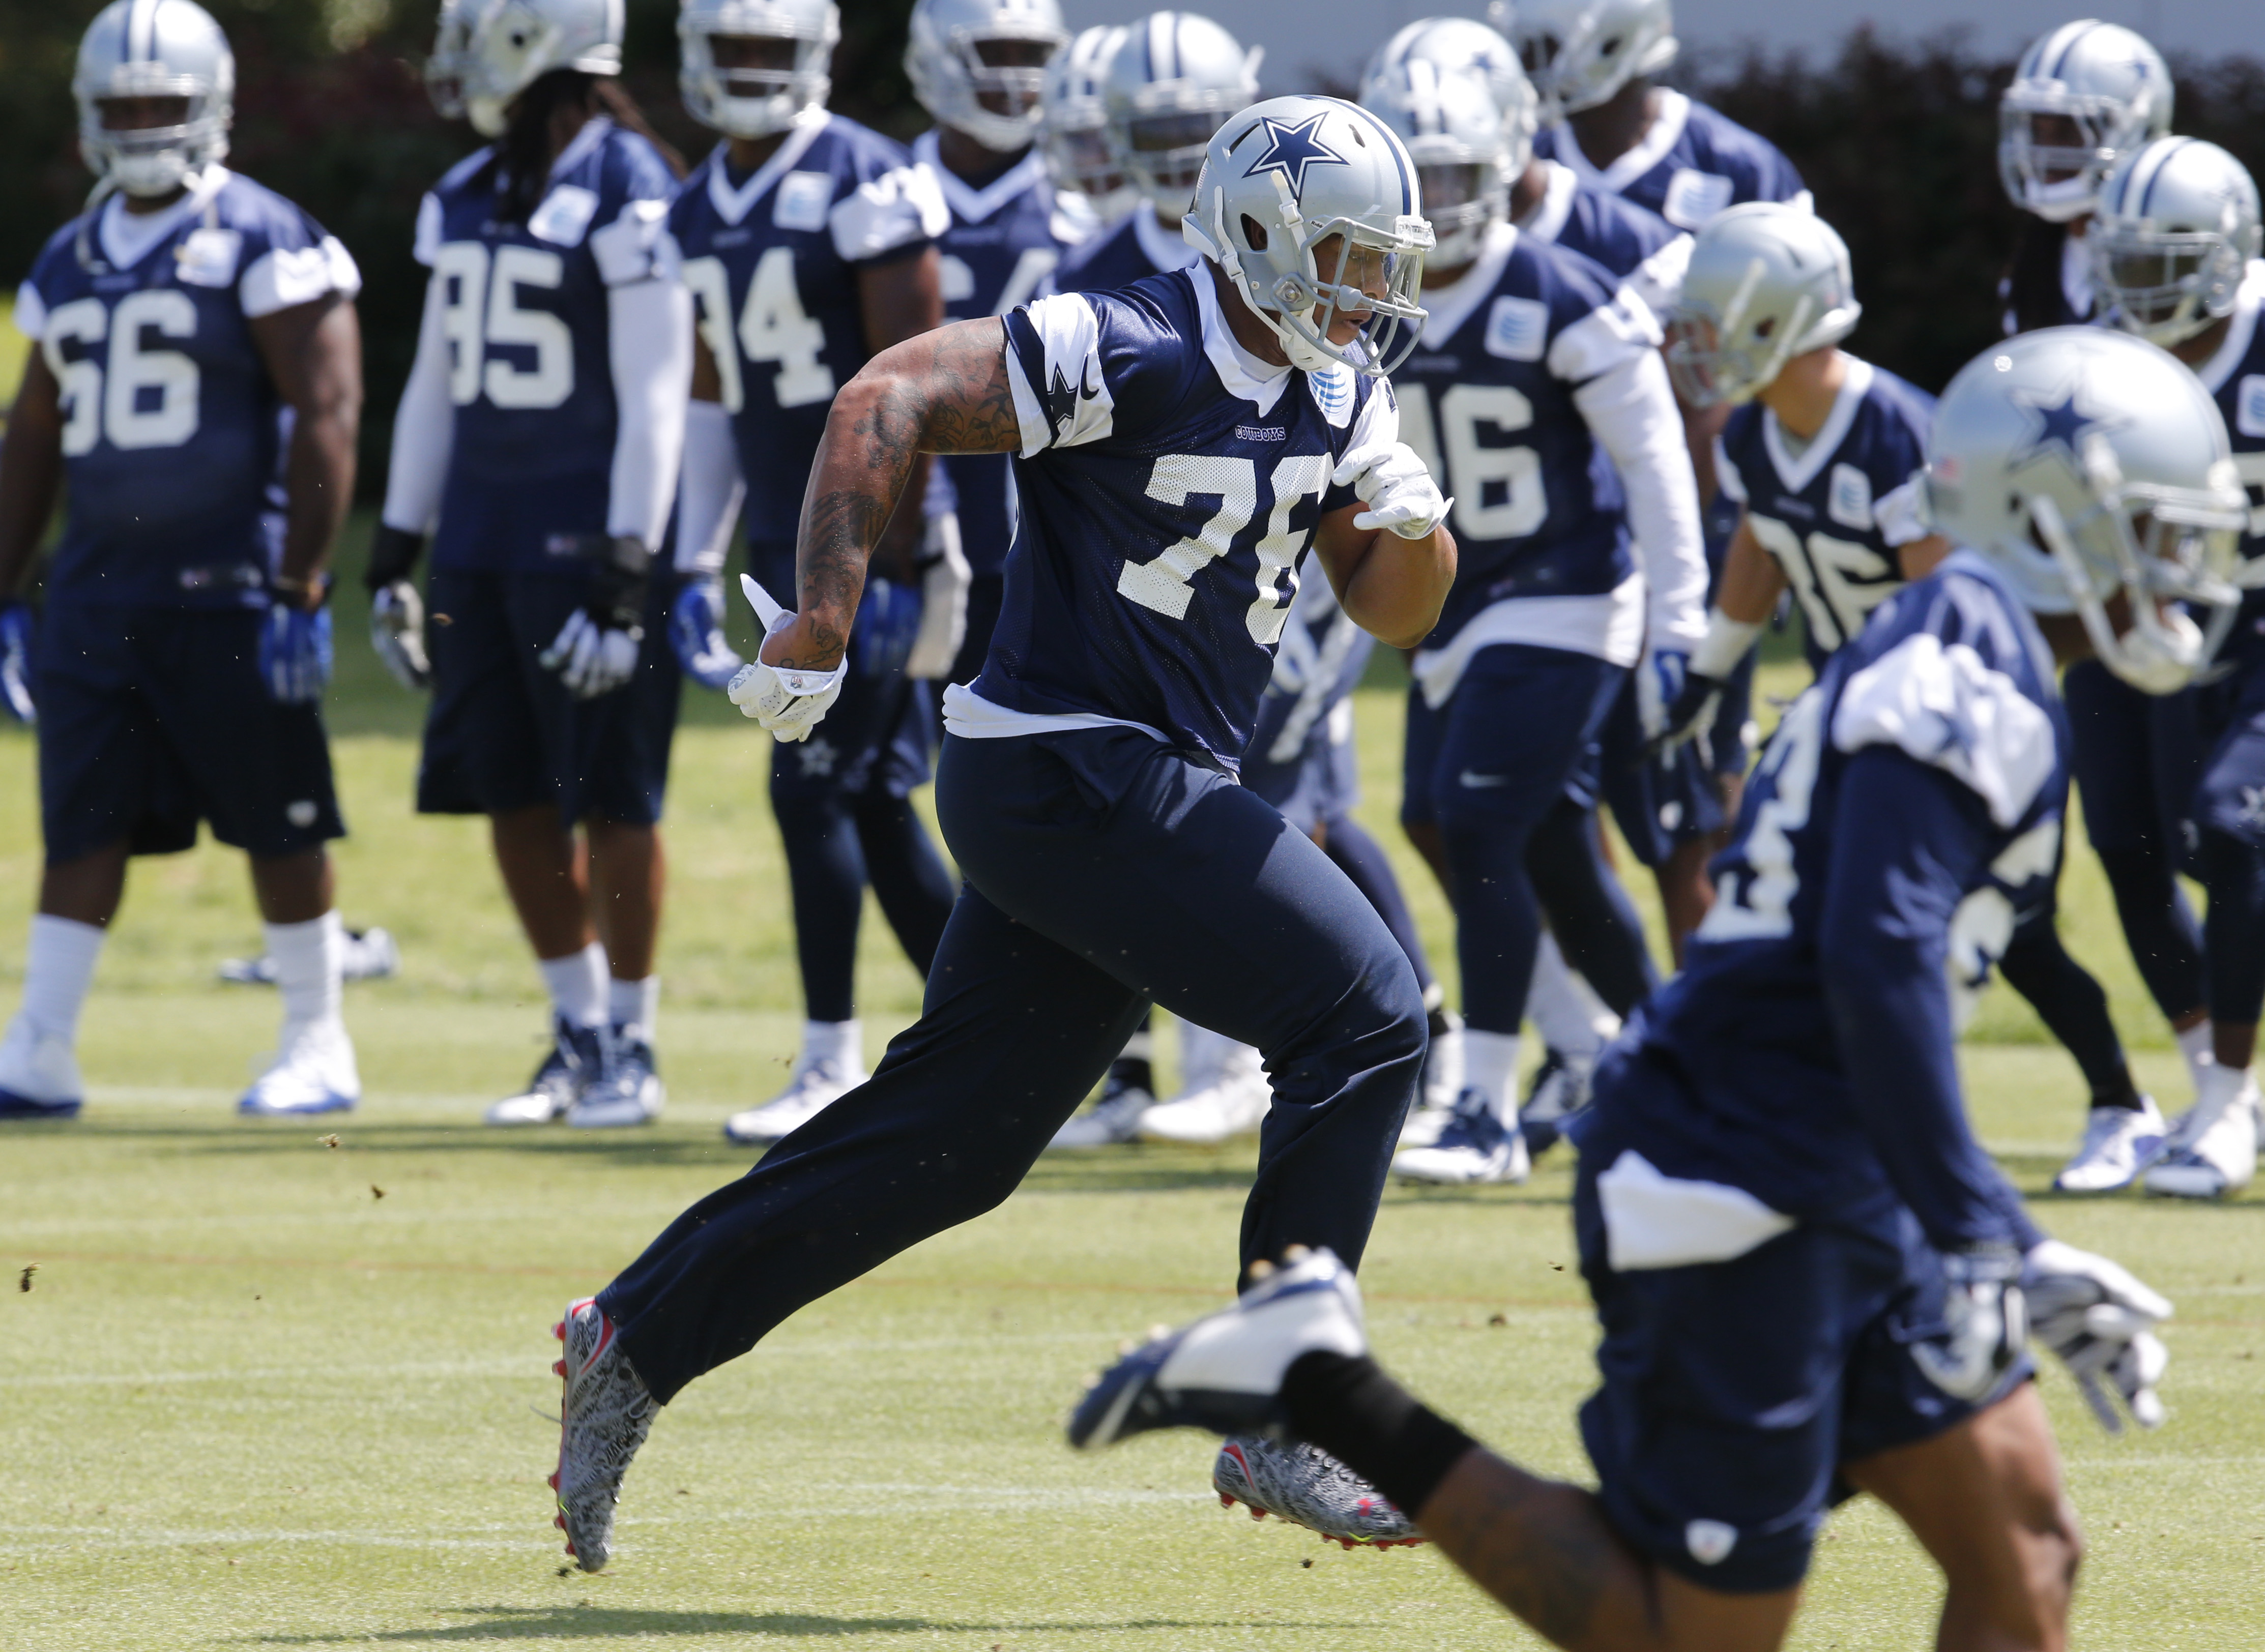 Cowboys Blog - Greg Hardy Update: Arbitrator Reduces Suspension to 4 Games